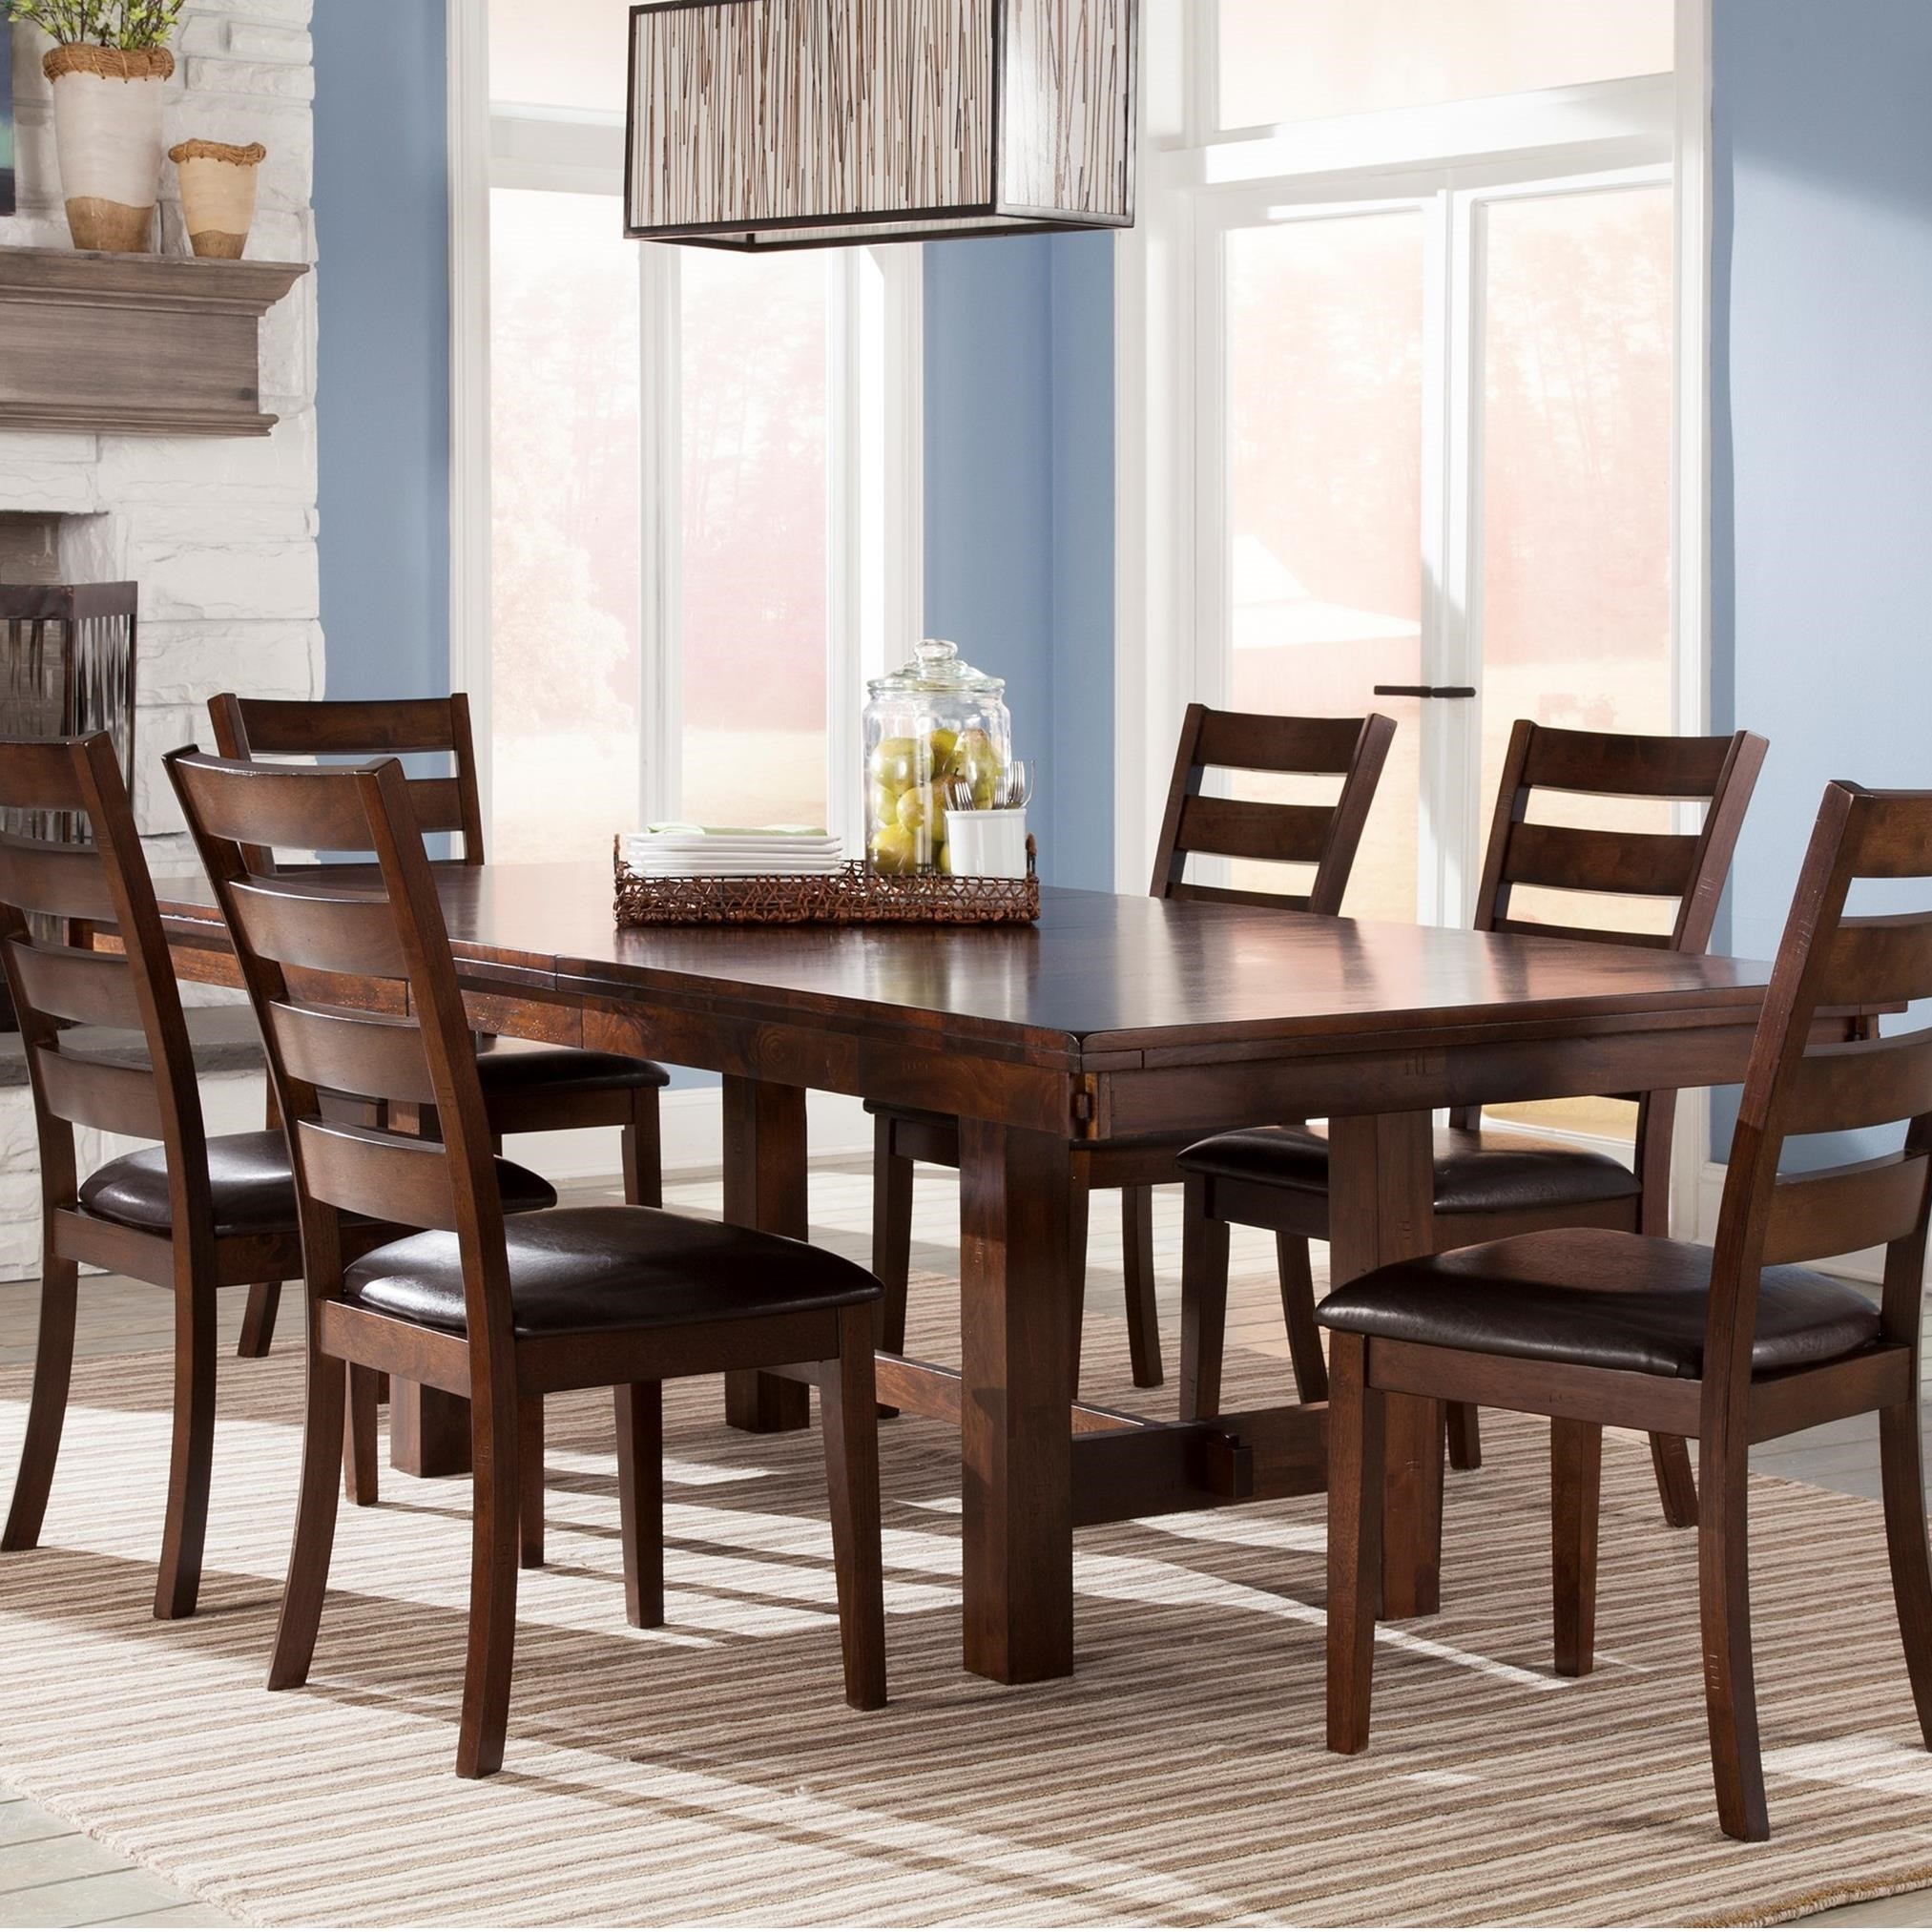 Country Kitchen Fairbanks: Intercon Kona Trestle Dining Table With Leaf